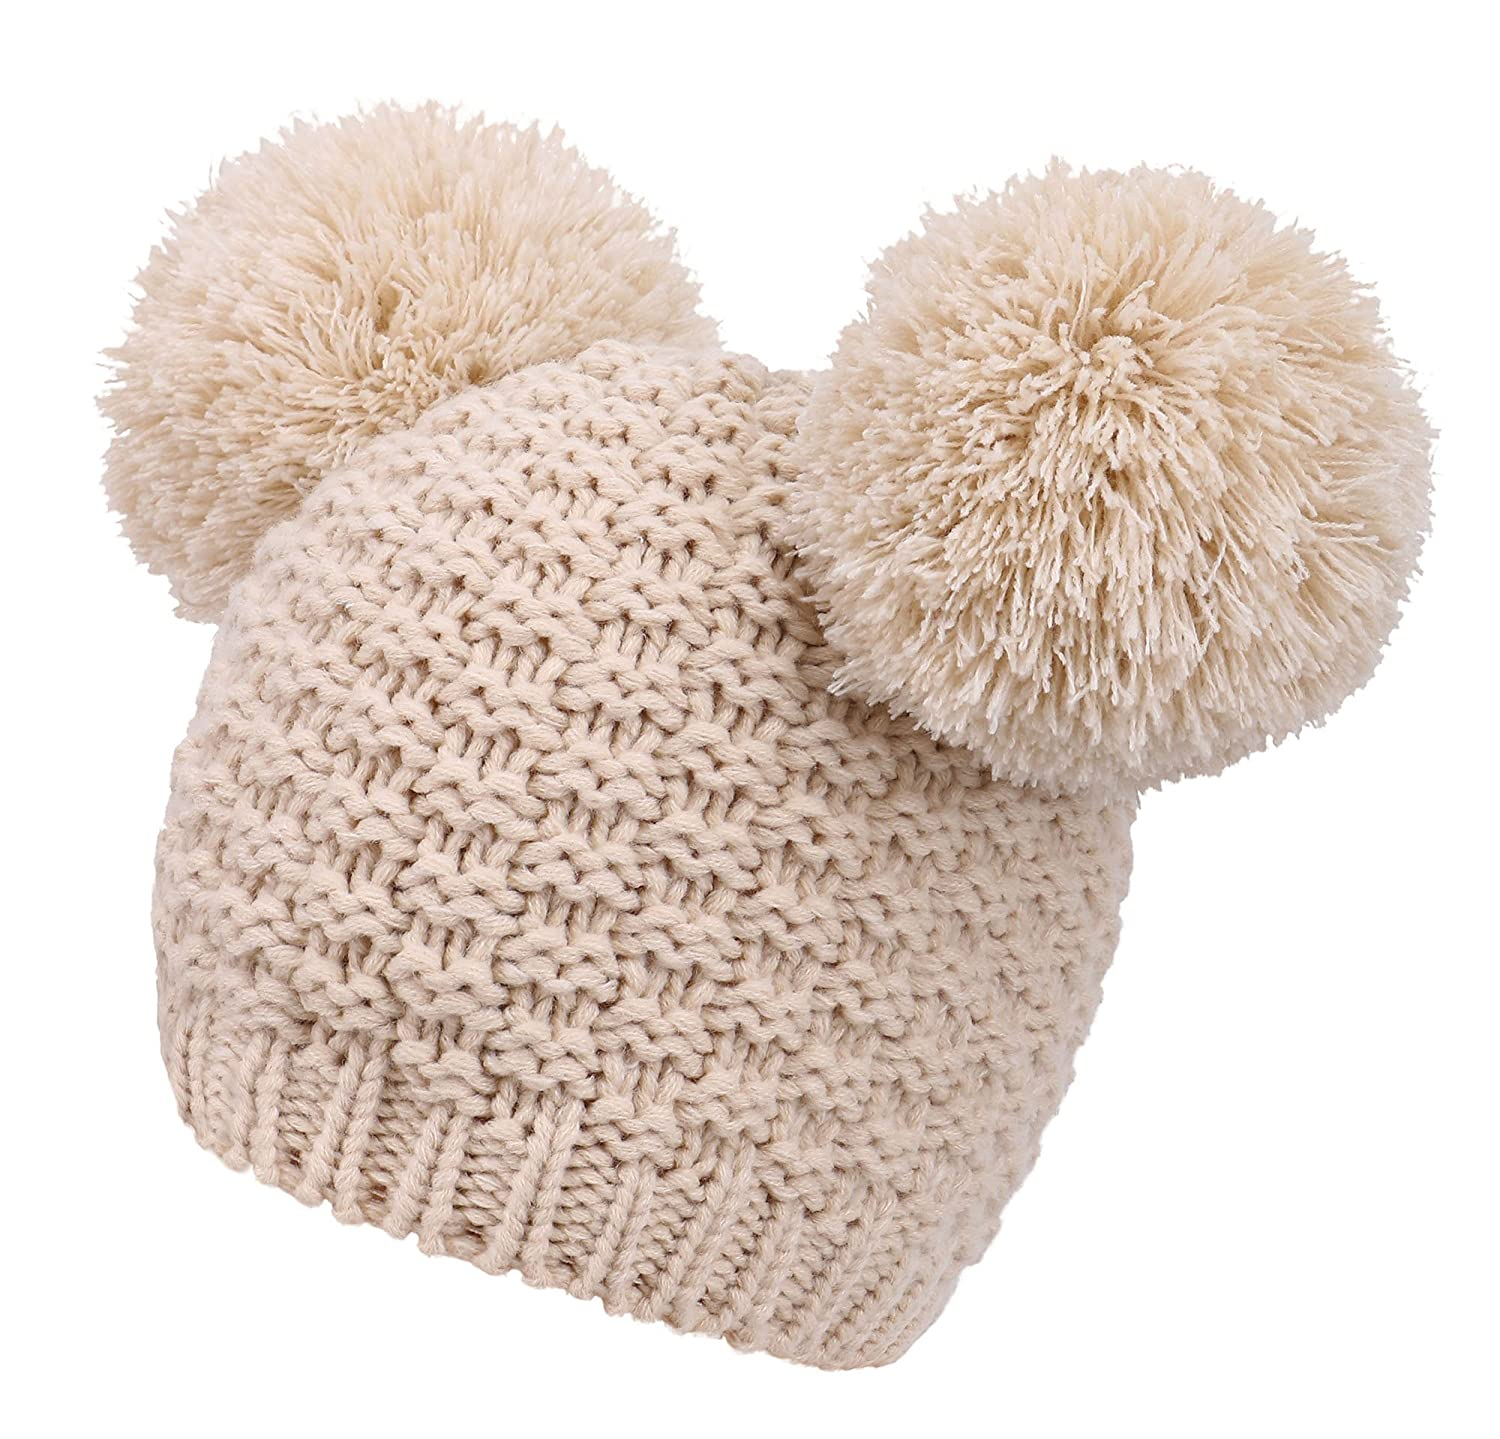 42357b9c9 Livingston Women's Winter Chunky Knit Beanie Hat w/Double Pompom Ears